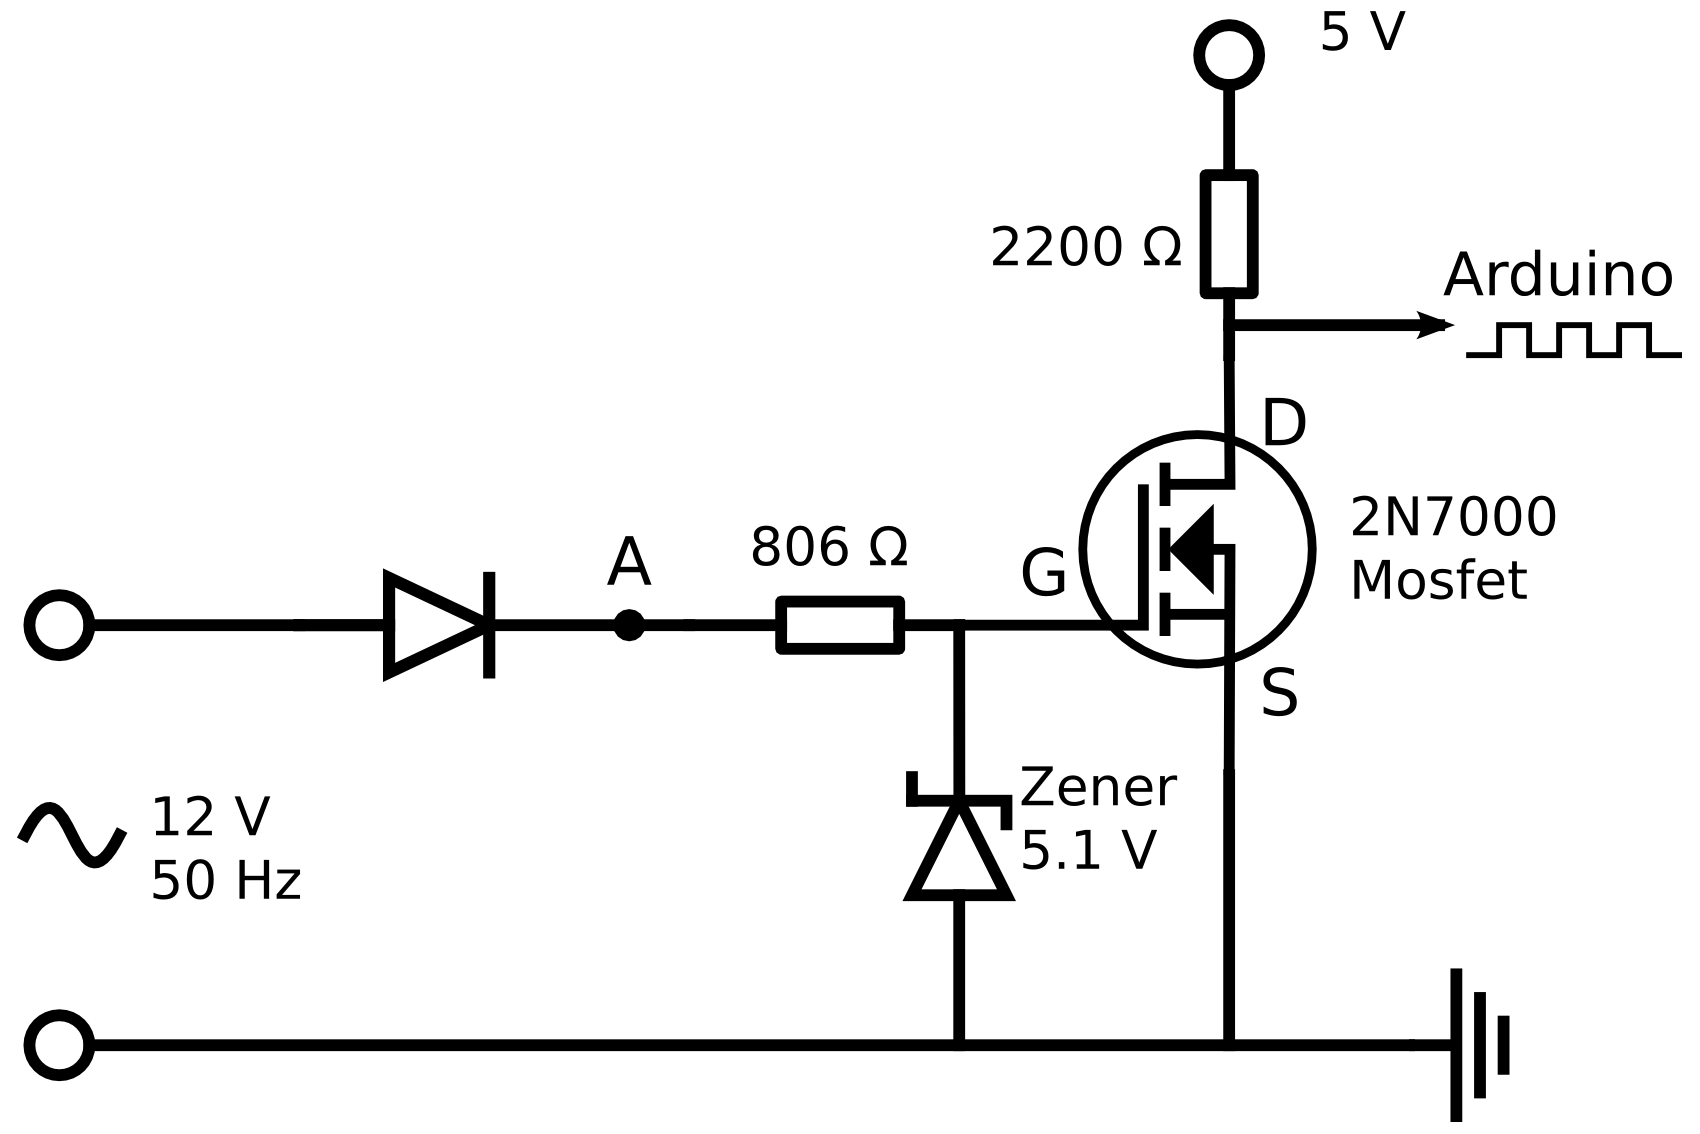 imperfect rectification with a rectifier diode